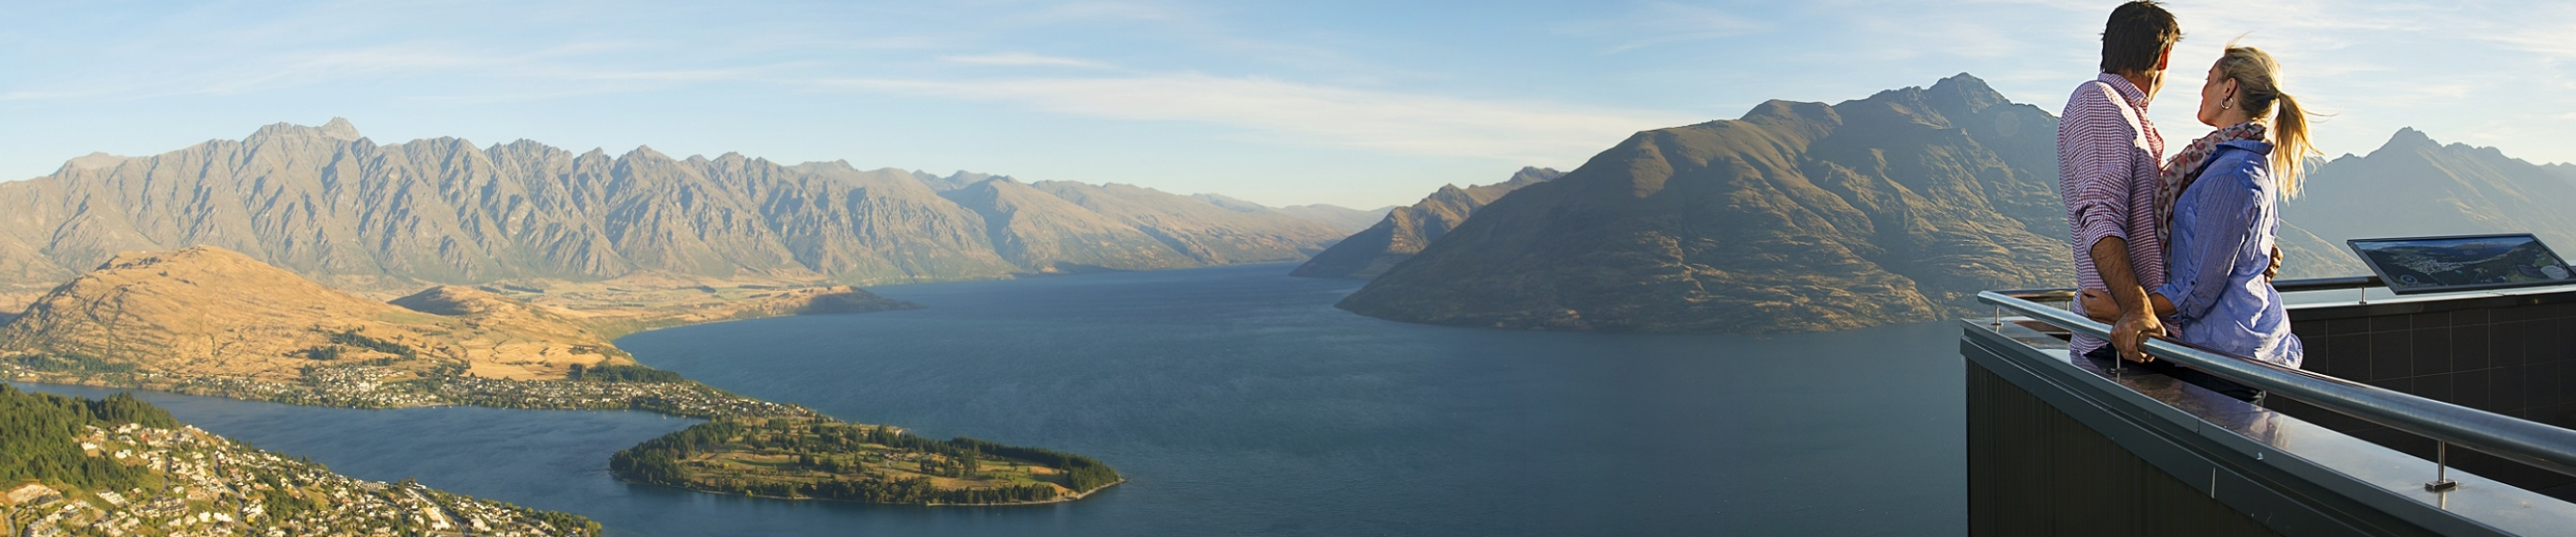 Queenstown Luxury (5 Days)